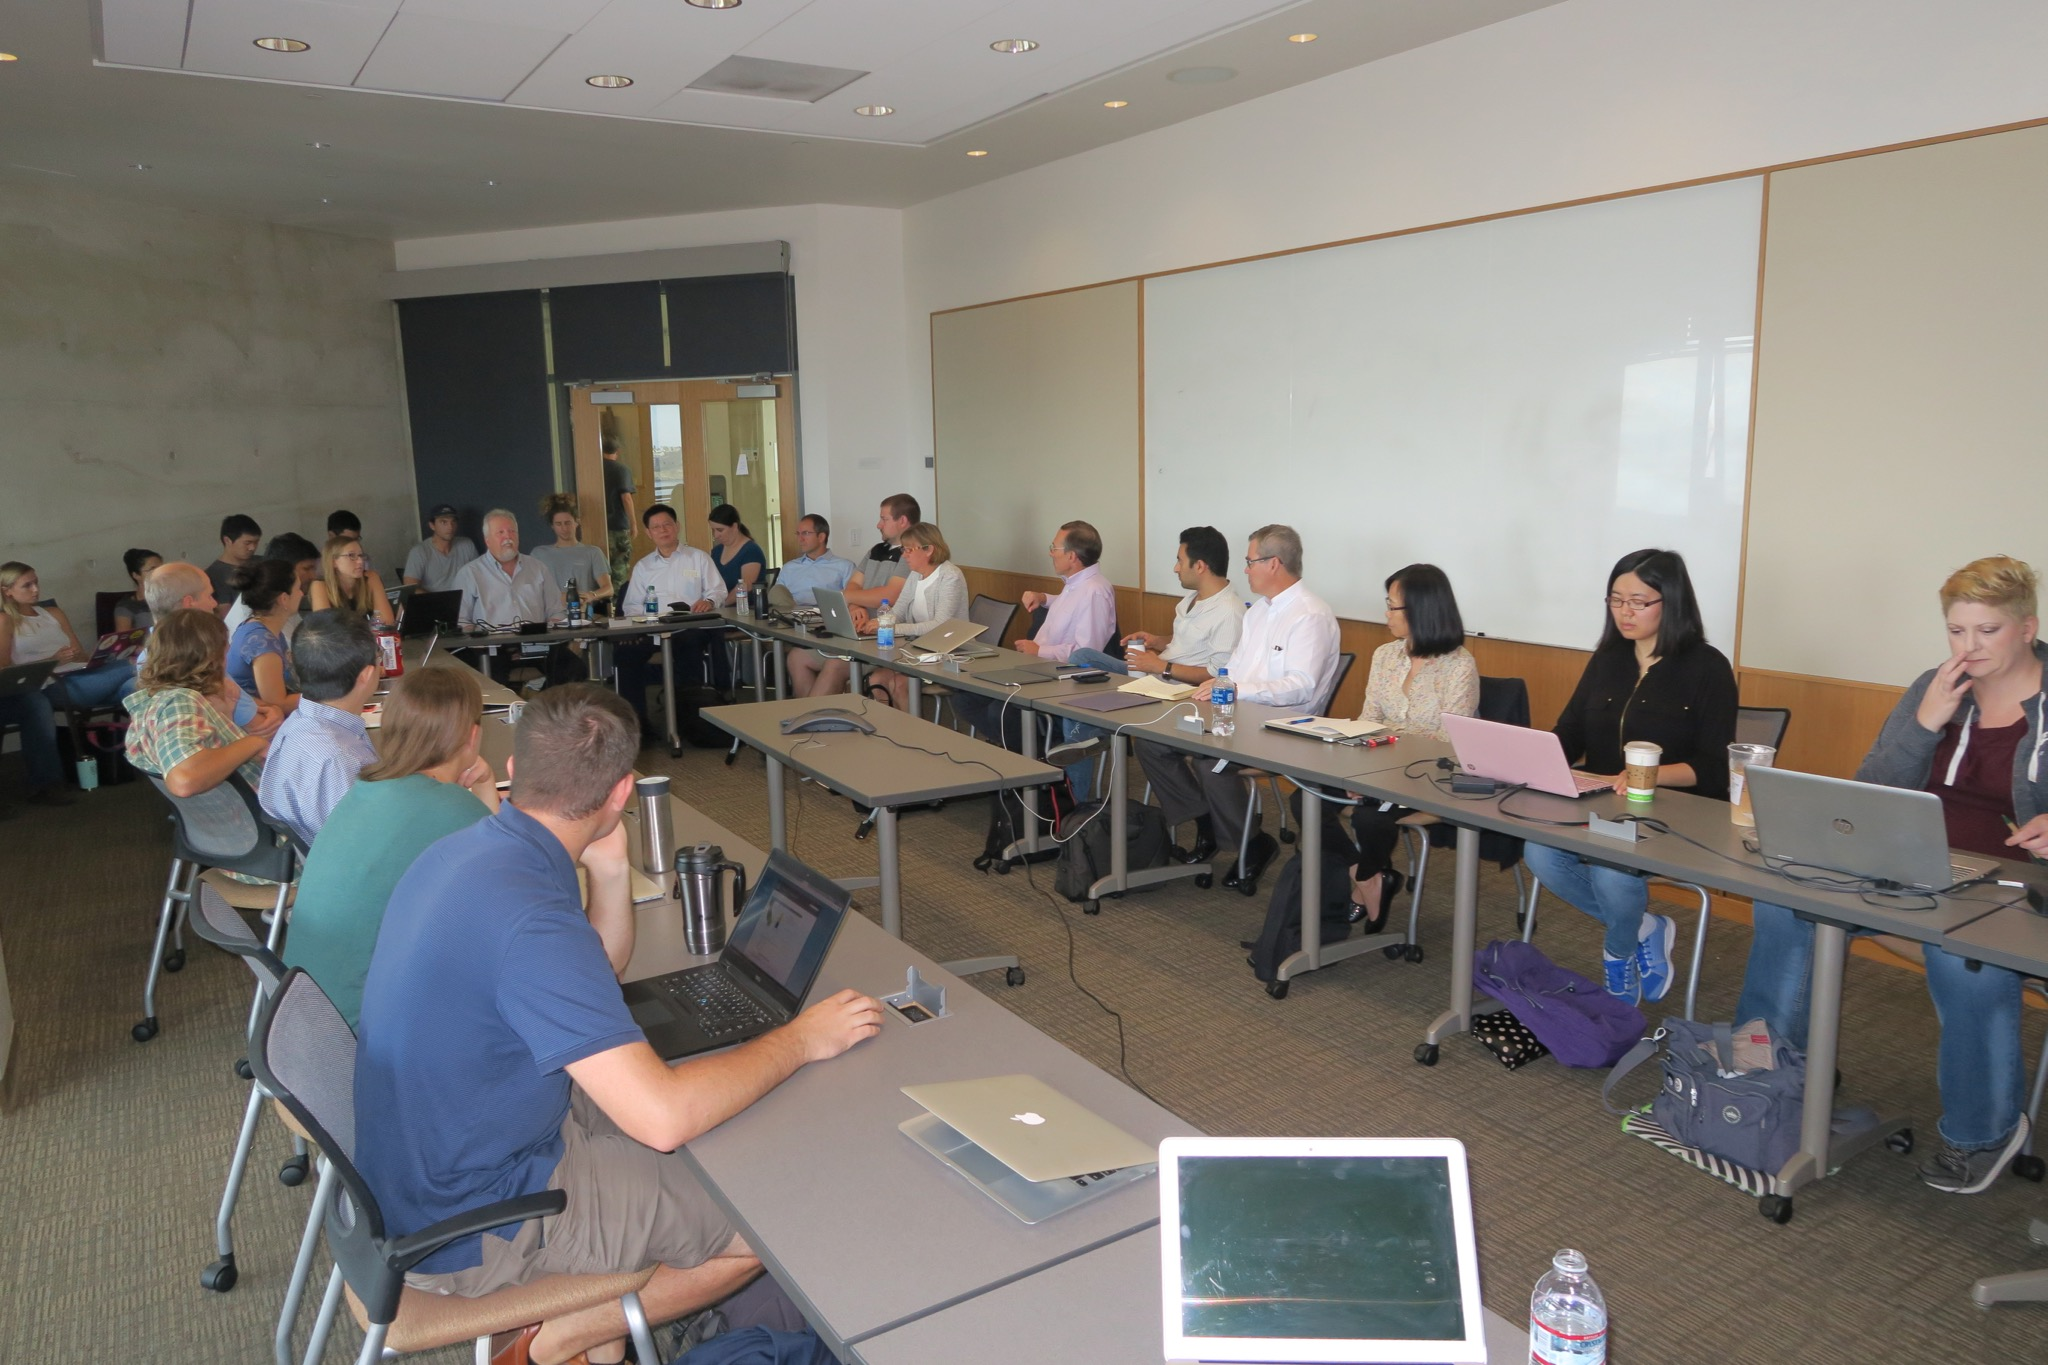 UCAR/NCAR 2nd Annual visit to CW3E – Center for Western